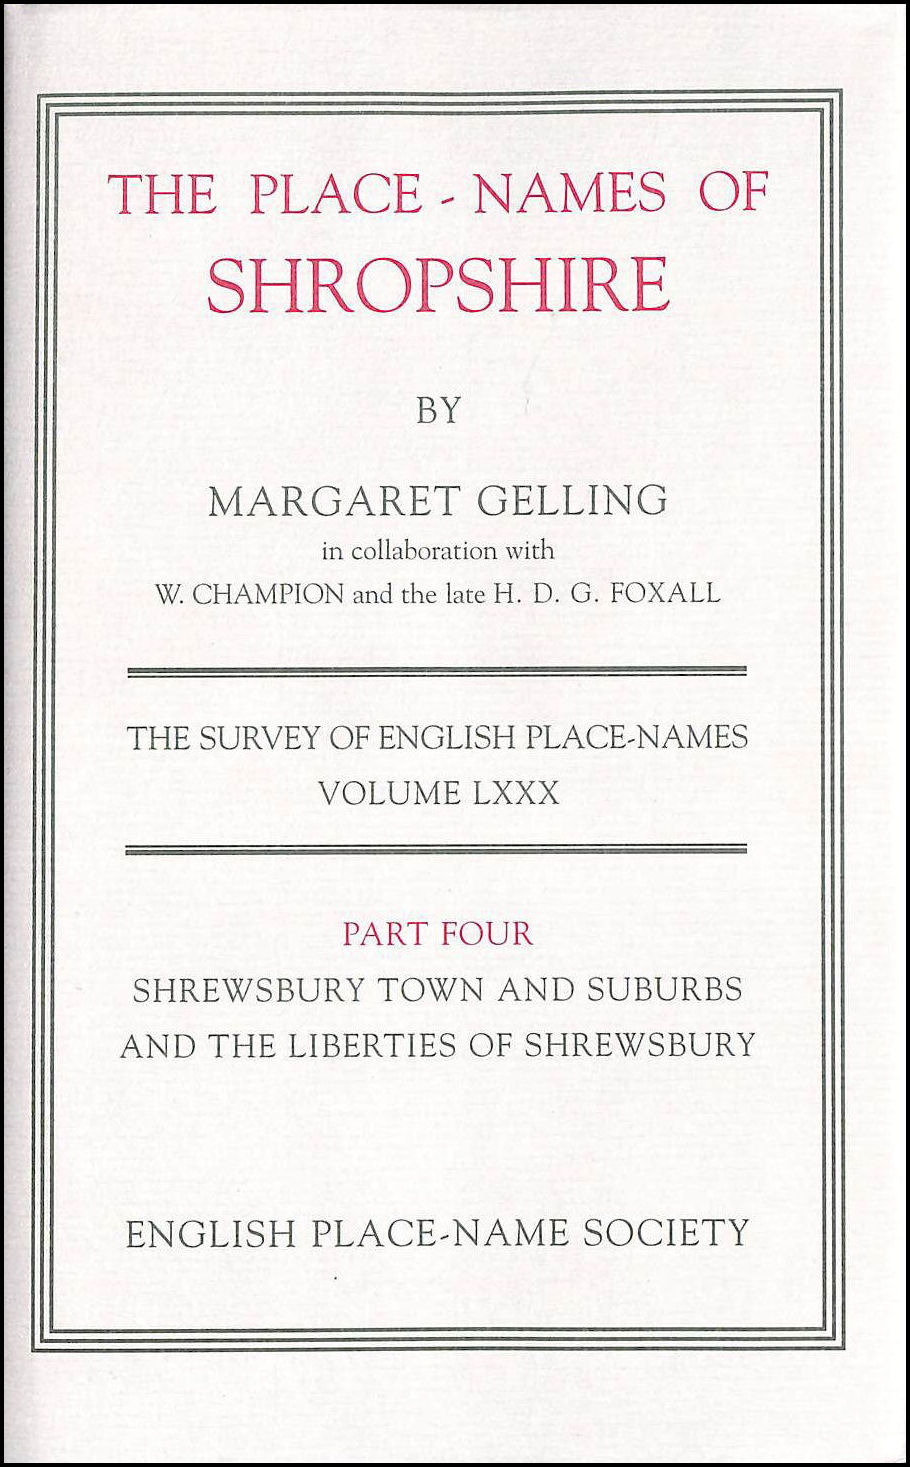 Image for The Place-Names of Shropshire: Shrewsbury Town and Suburbs and the Liberties of Shrewsbury Part 4: Pt. 4 (County Survey)